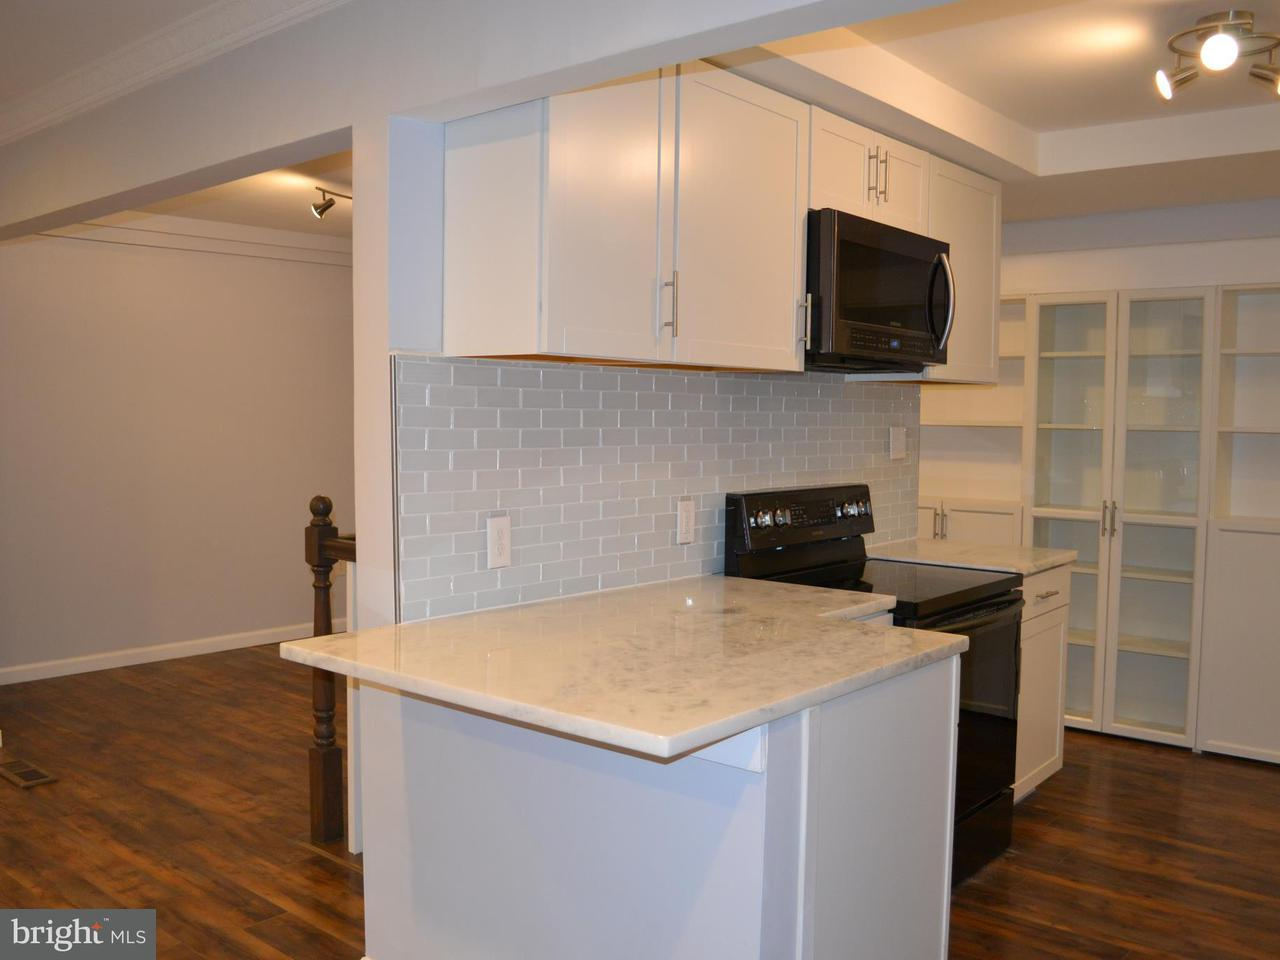 Additional photo for property listing at 3721 Richard Avenue 3721 Richard Avenue Fairfax, Βιρτζινια 22031 Ηνωμενεσ Πολιτειεσ